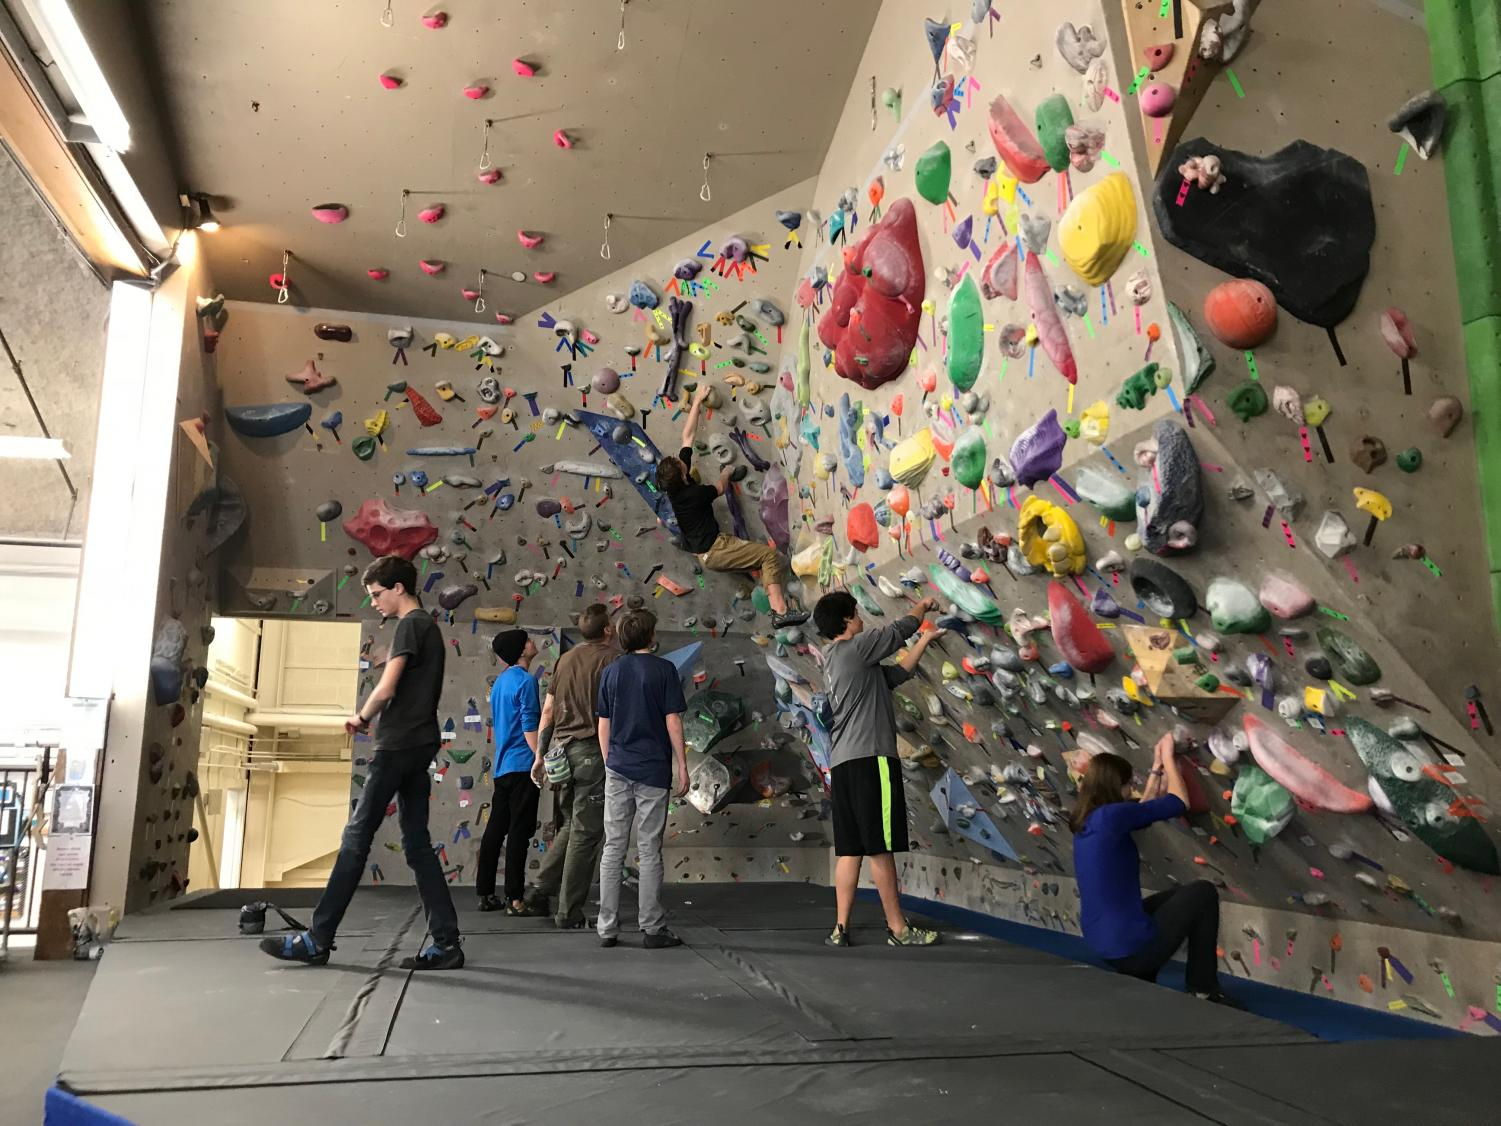 High school climbers training after school.